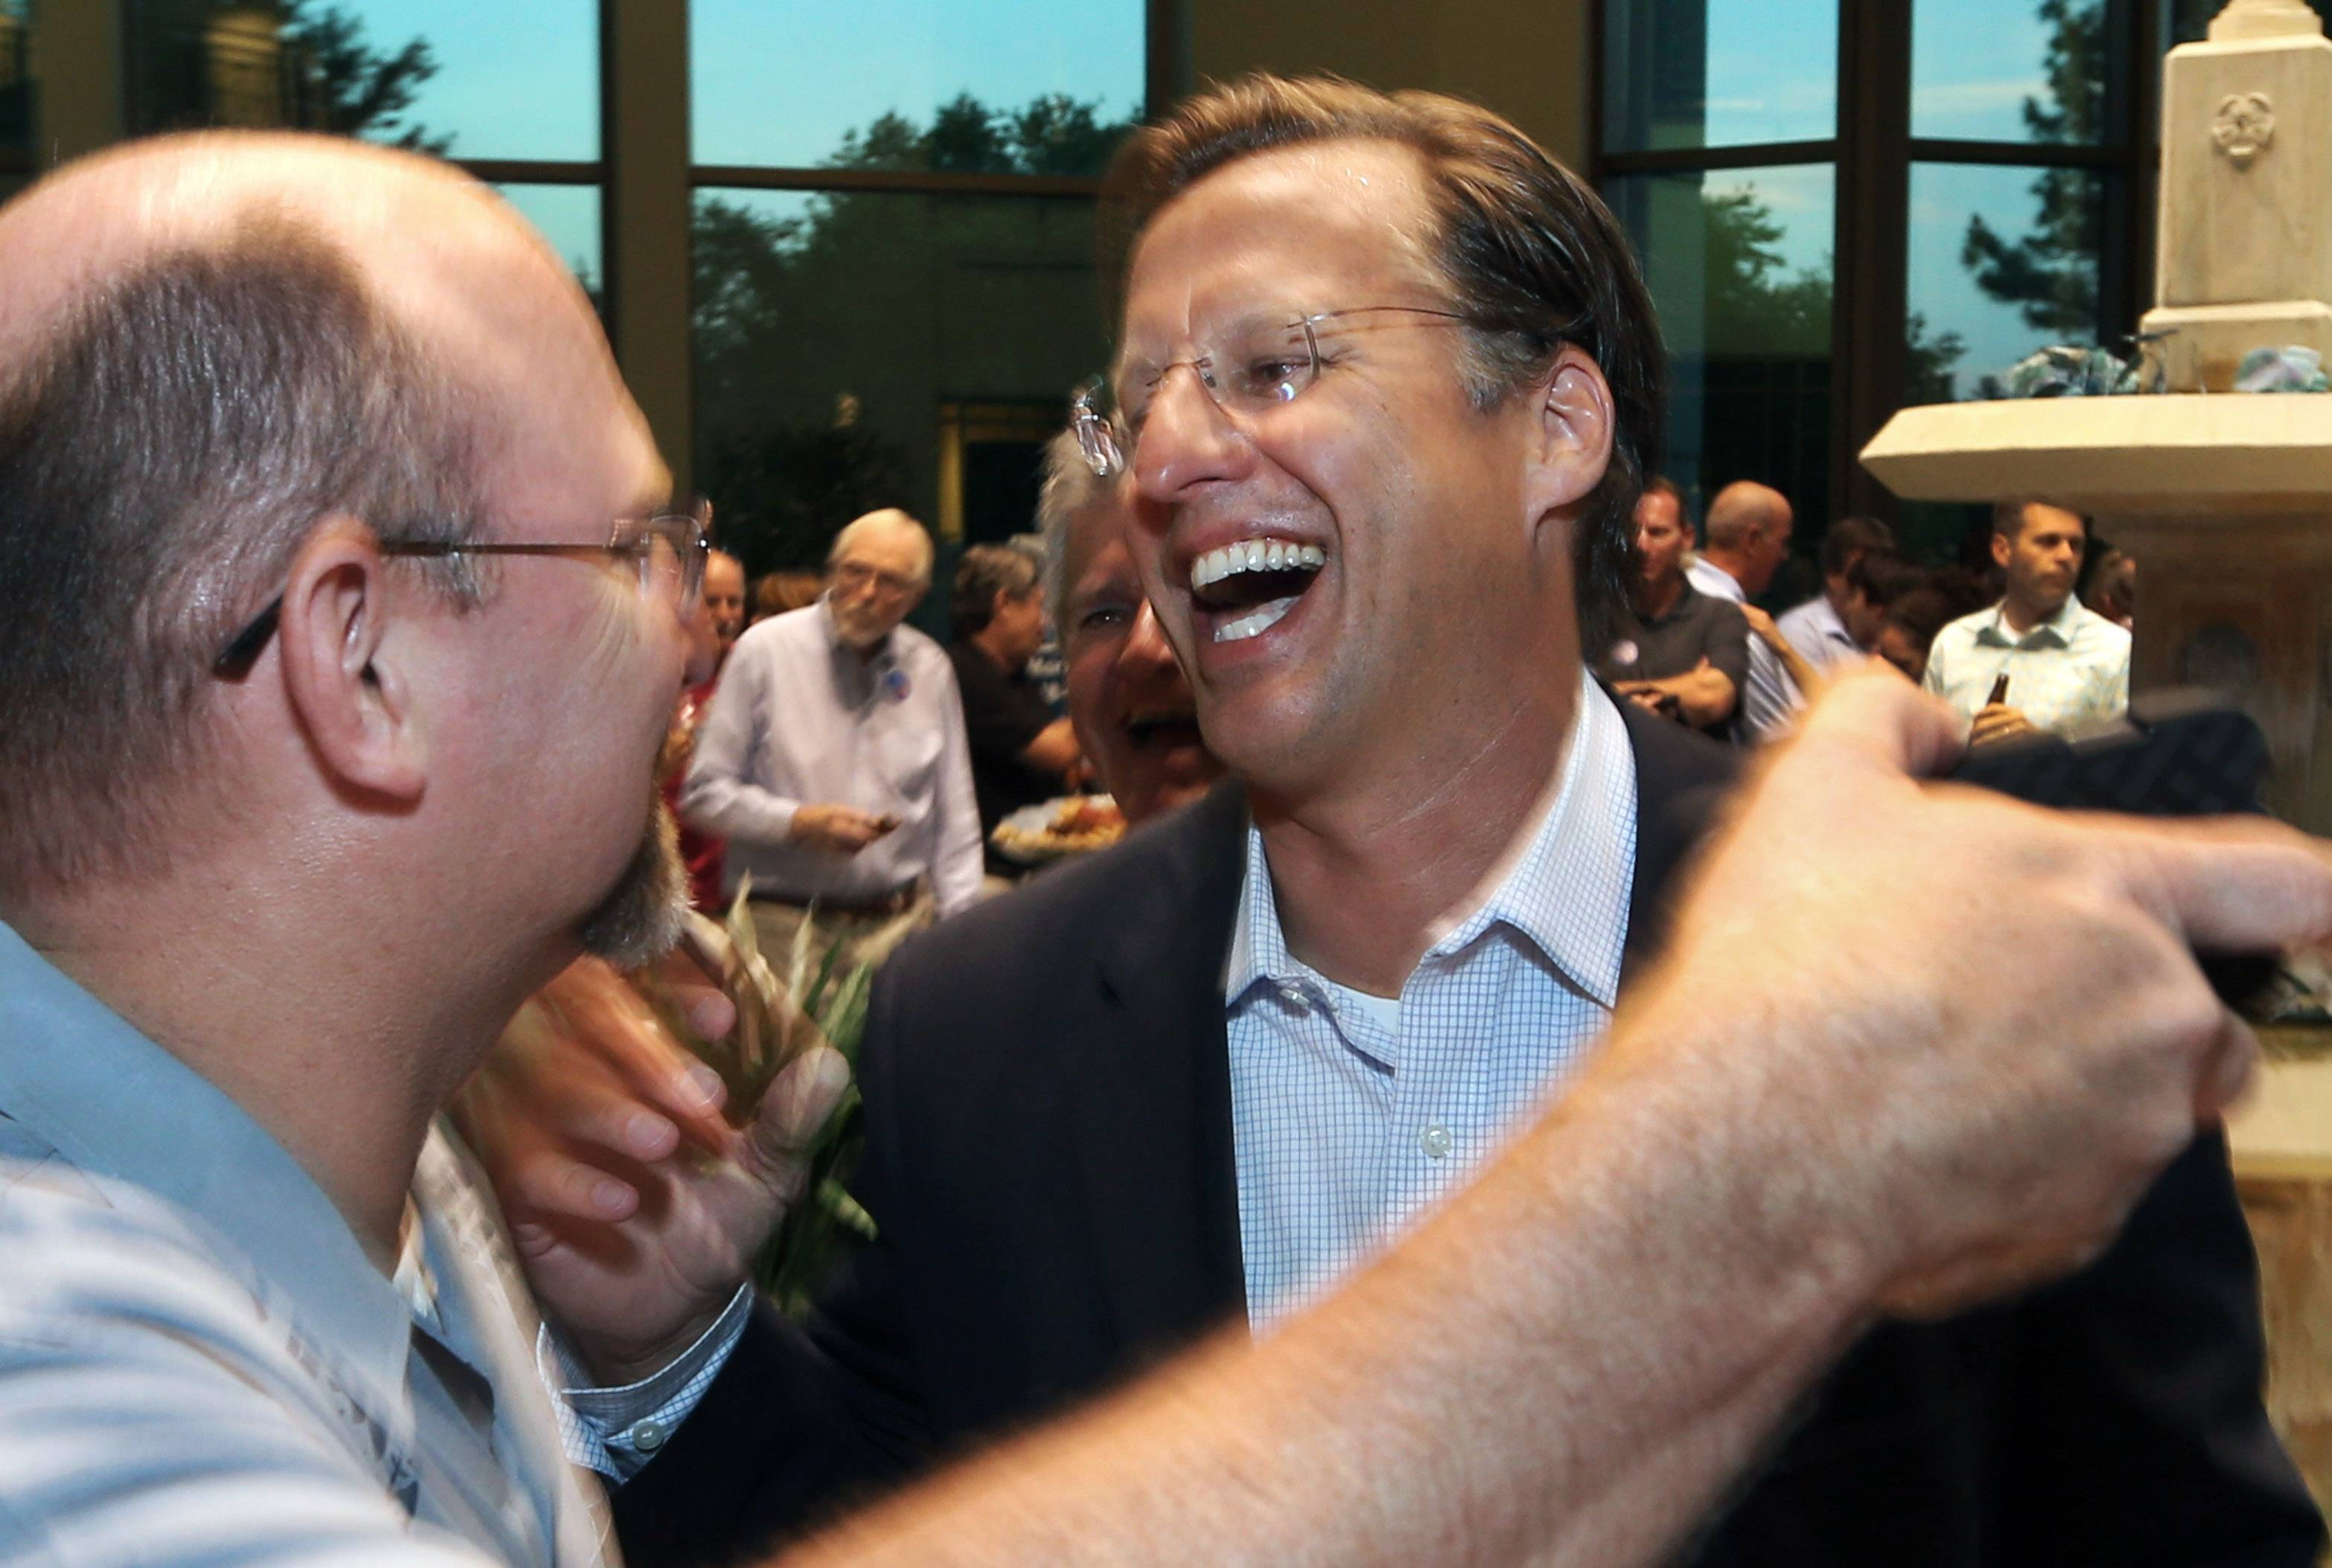 Dave Brat, right, is congratulated by Johnny Wetlaufer after Brat defeated House Majority Leader Eric Cantor in the Republican primary, Tuesday, June 10, 2014, in Richmond, Va.